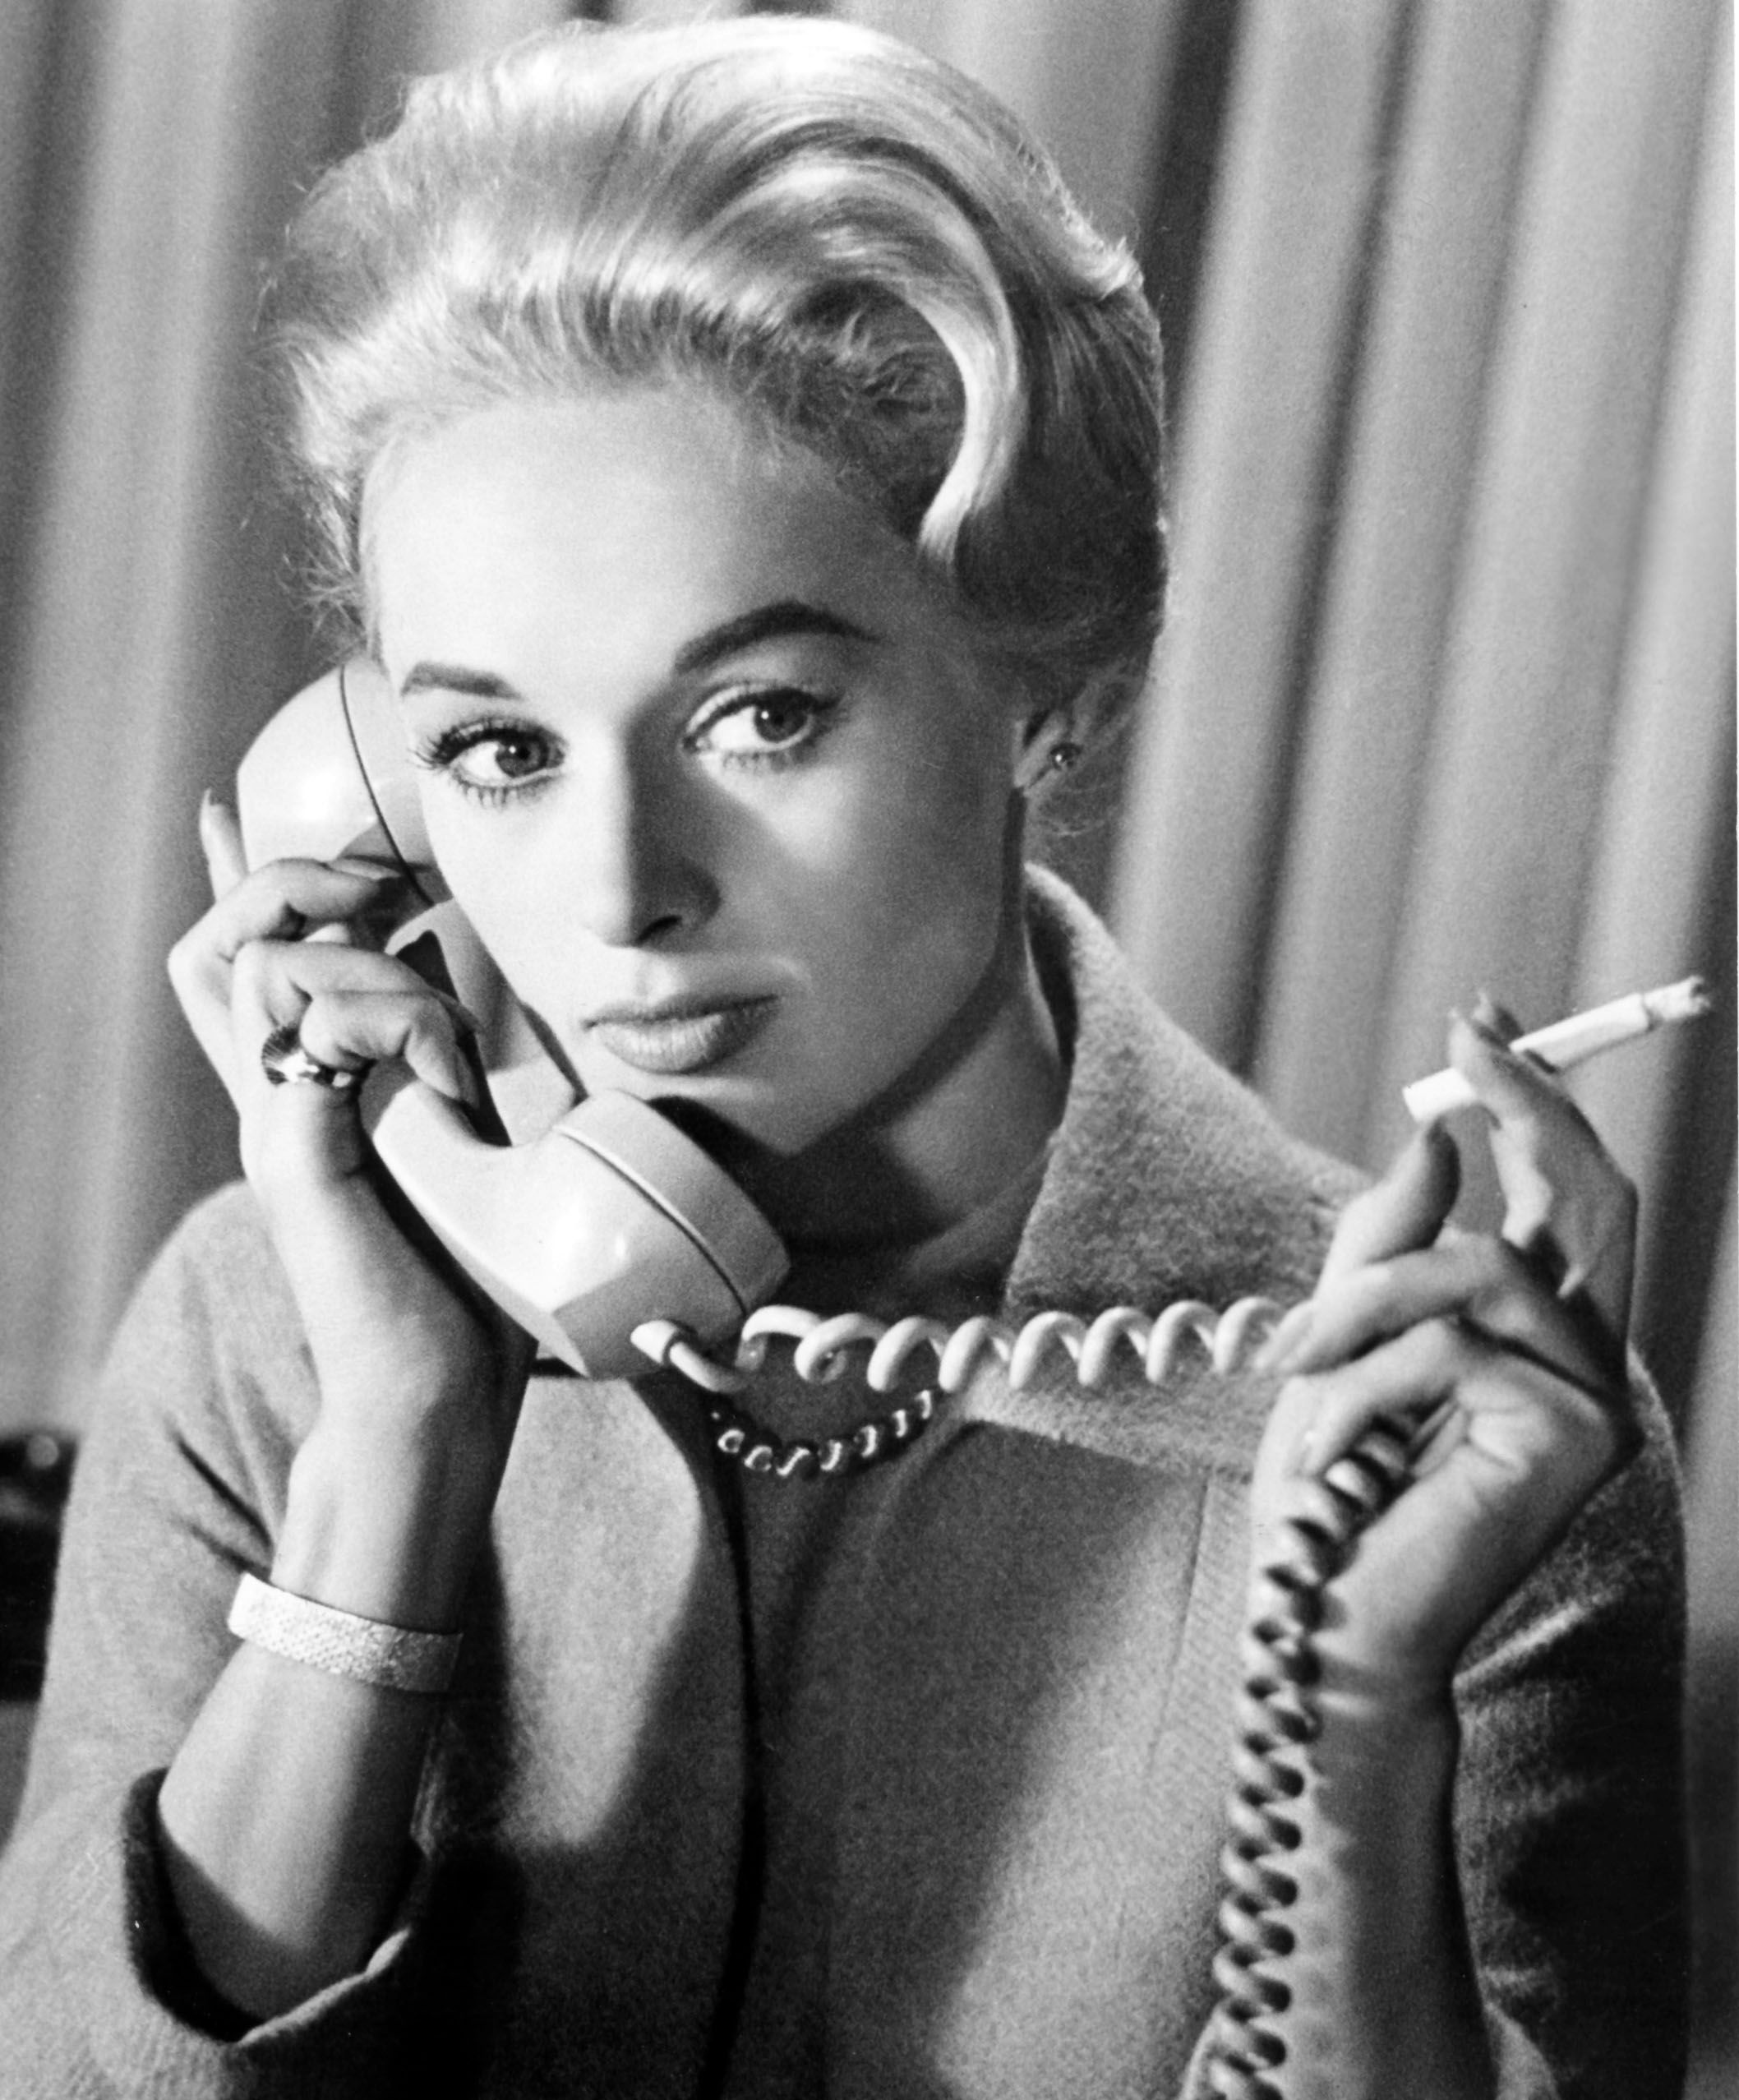 Tippi Hedren receives phone call in a scene from the film 'The Birds', 1963. | Source: Getty Images